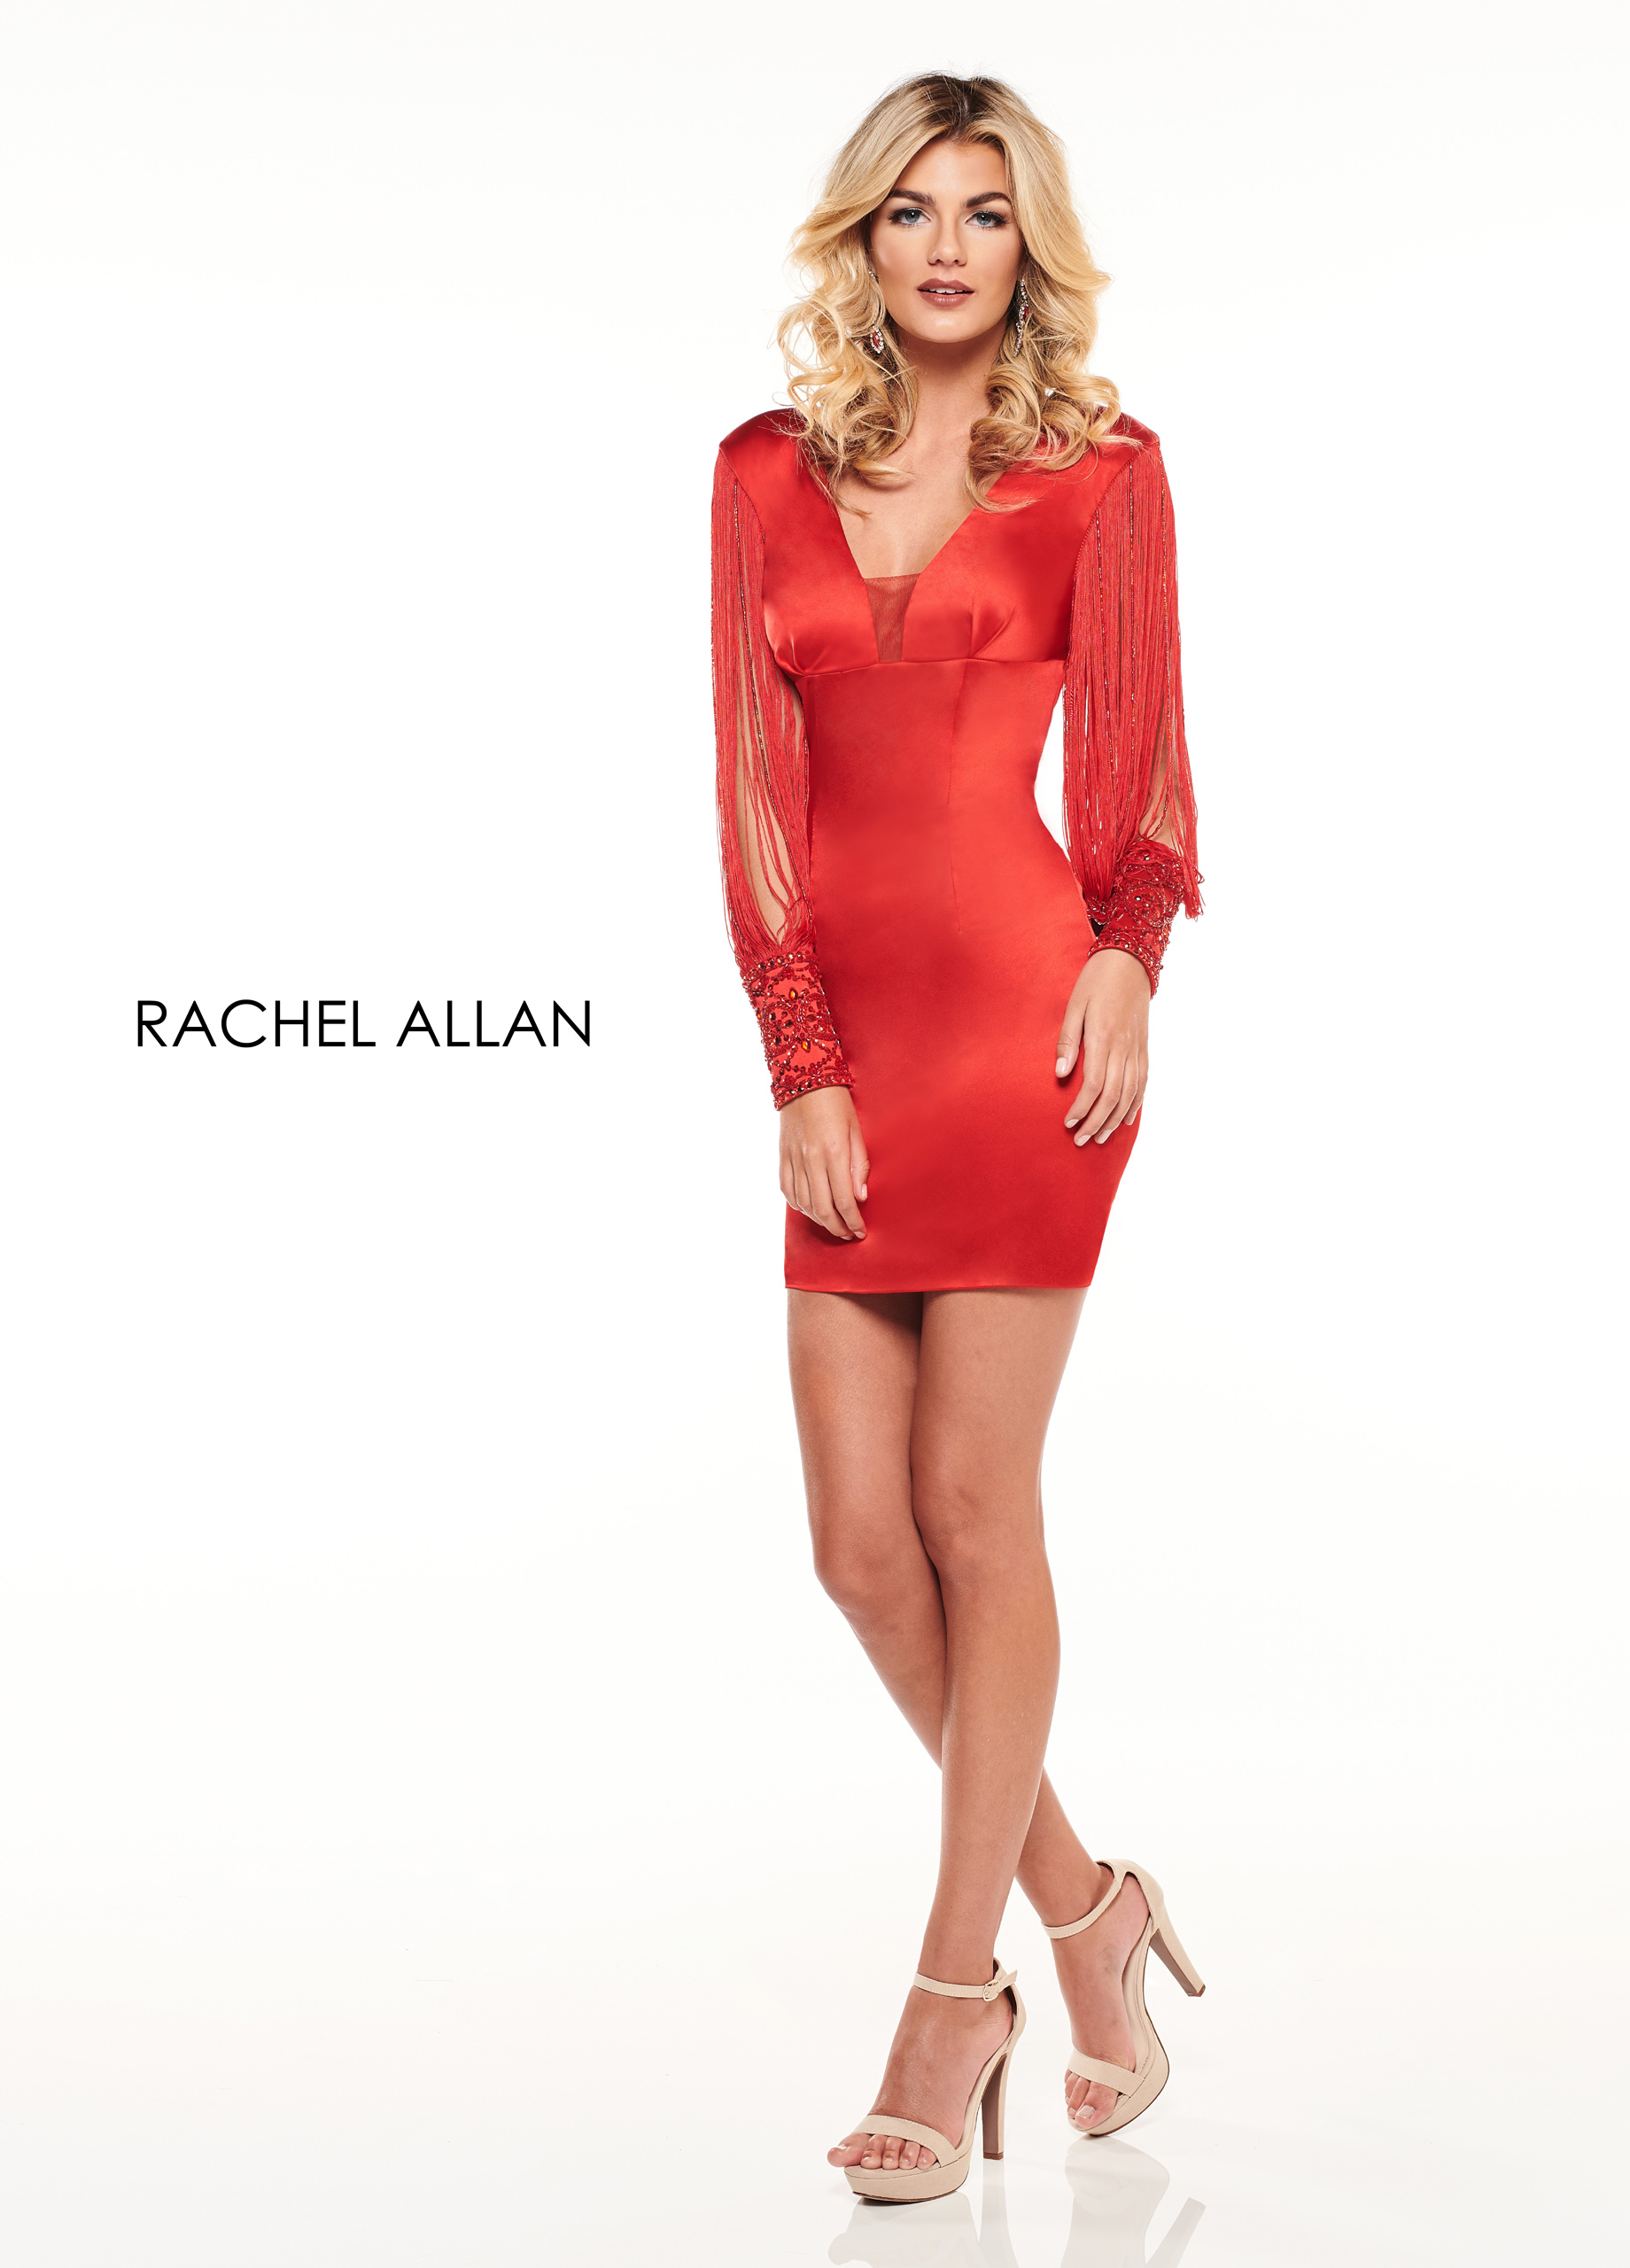 V-Neck Fitted Mini Cocktail Dresses in Red Color